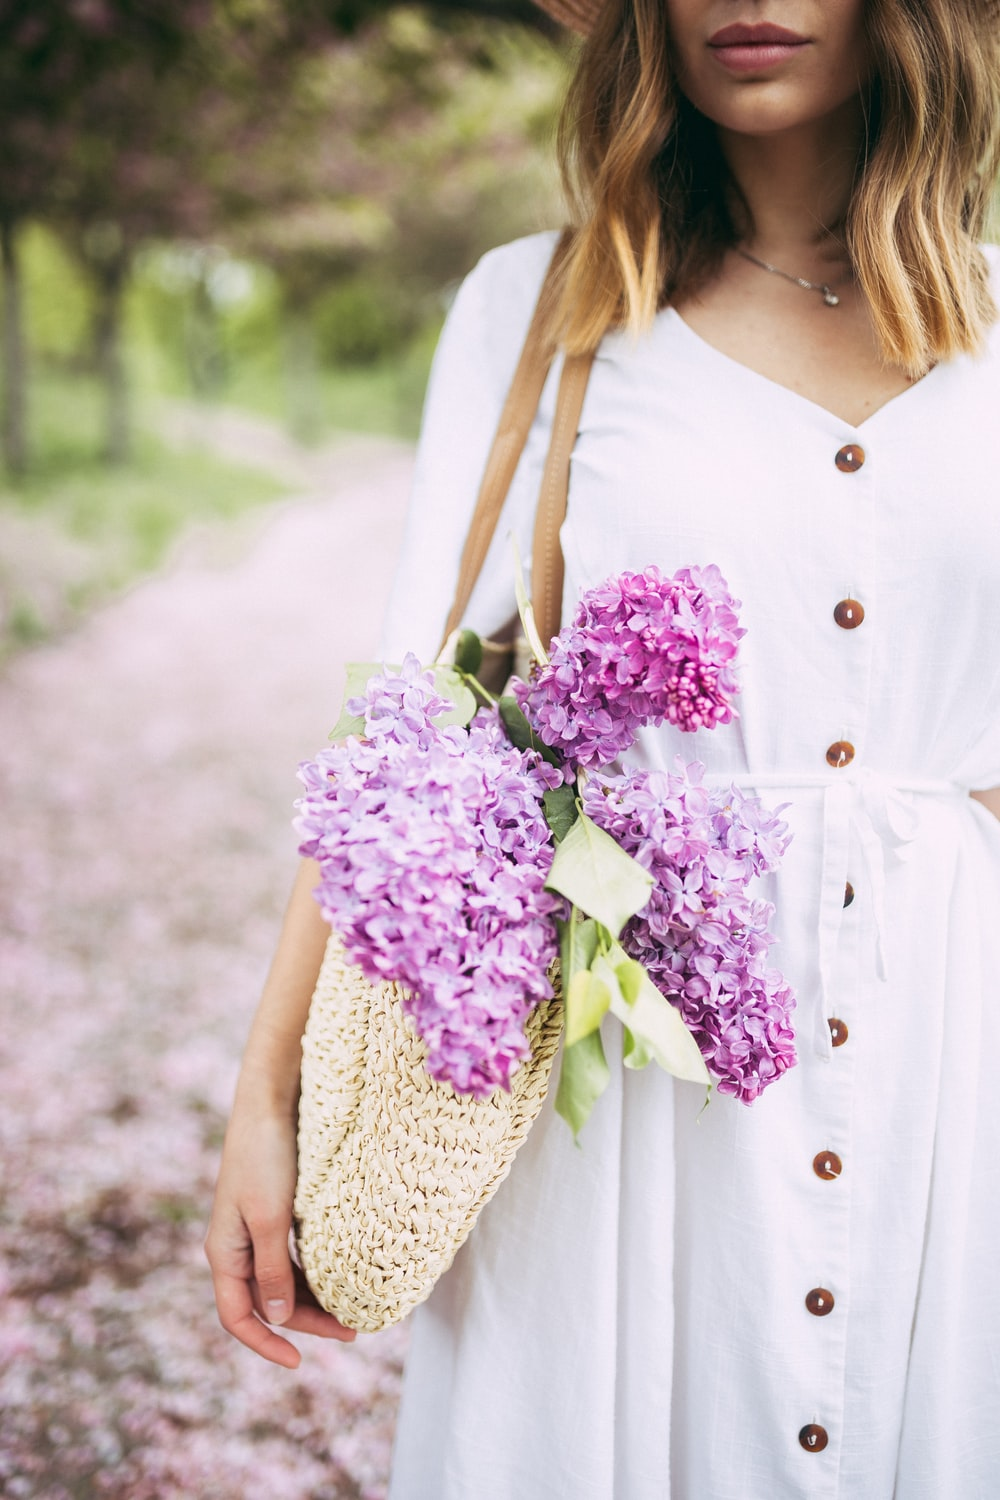 woman carrying bag with flowers